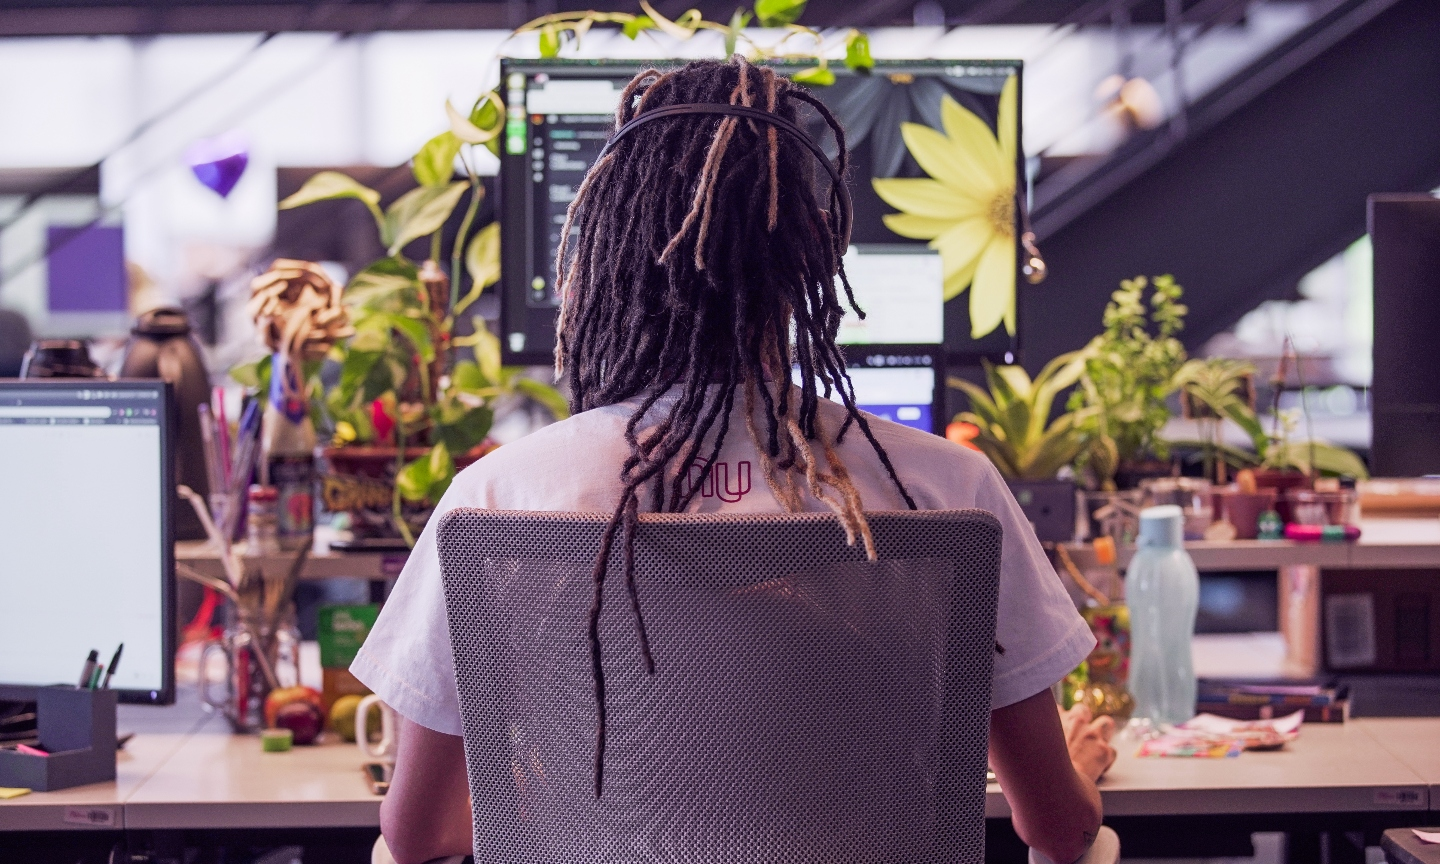 A young man with dreadlocks seen from behind works in his computer, that is surrounded by plants.